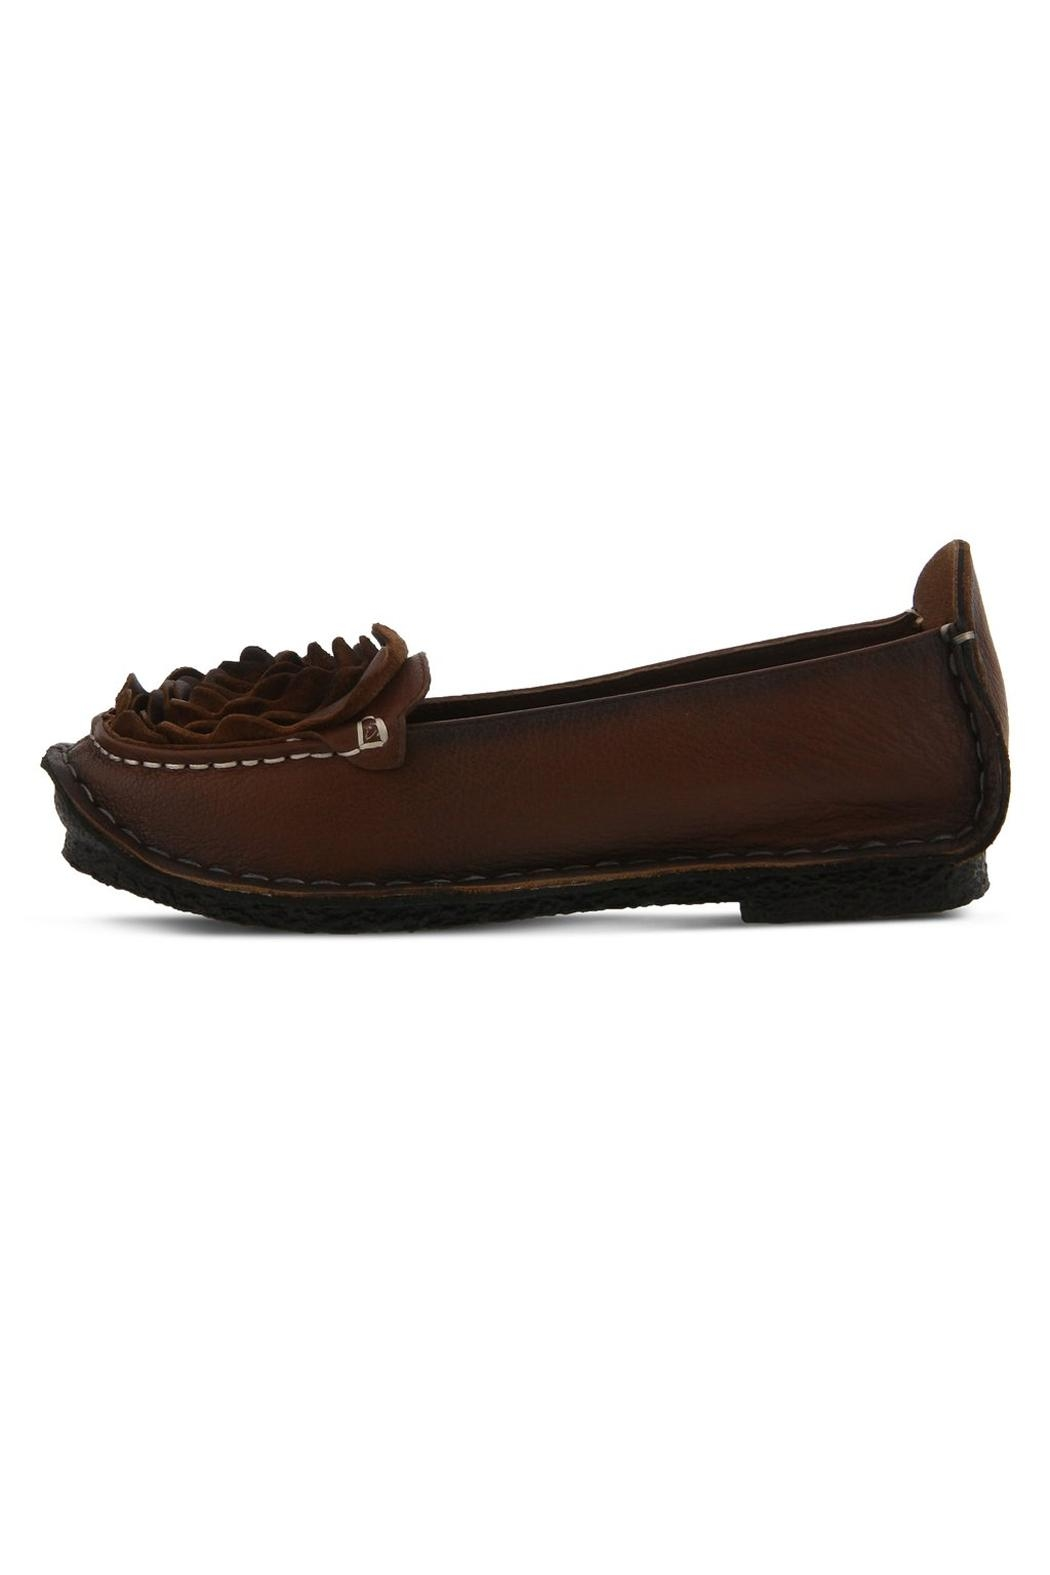 L'Artisan Dezi Slip-On Flats - Front Cropped Image